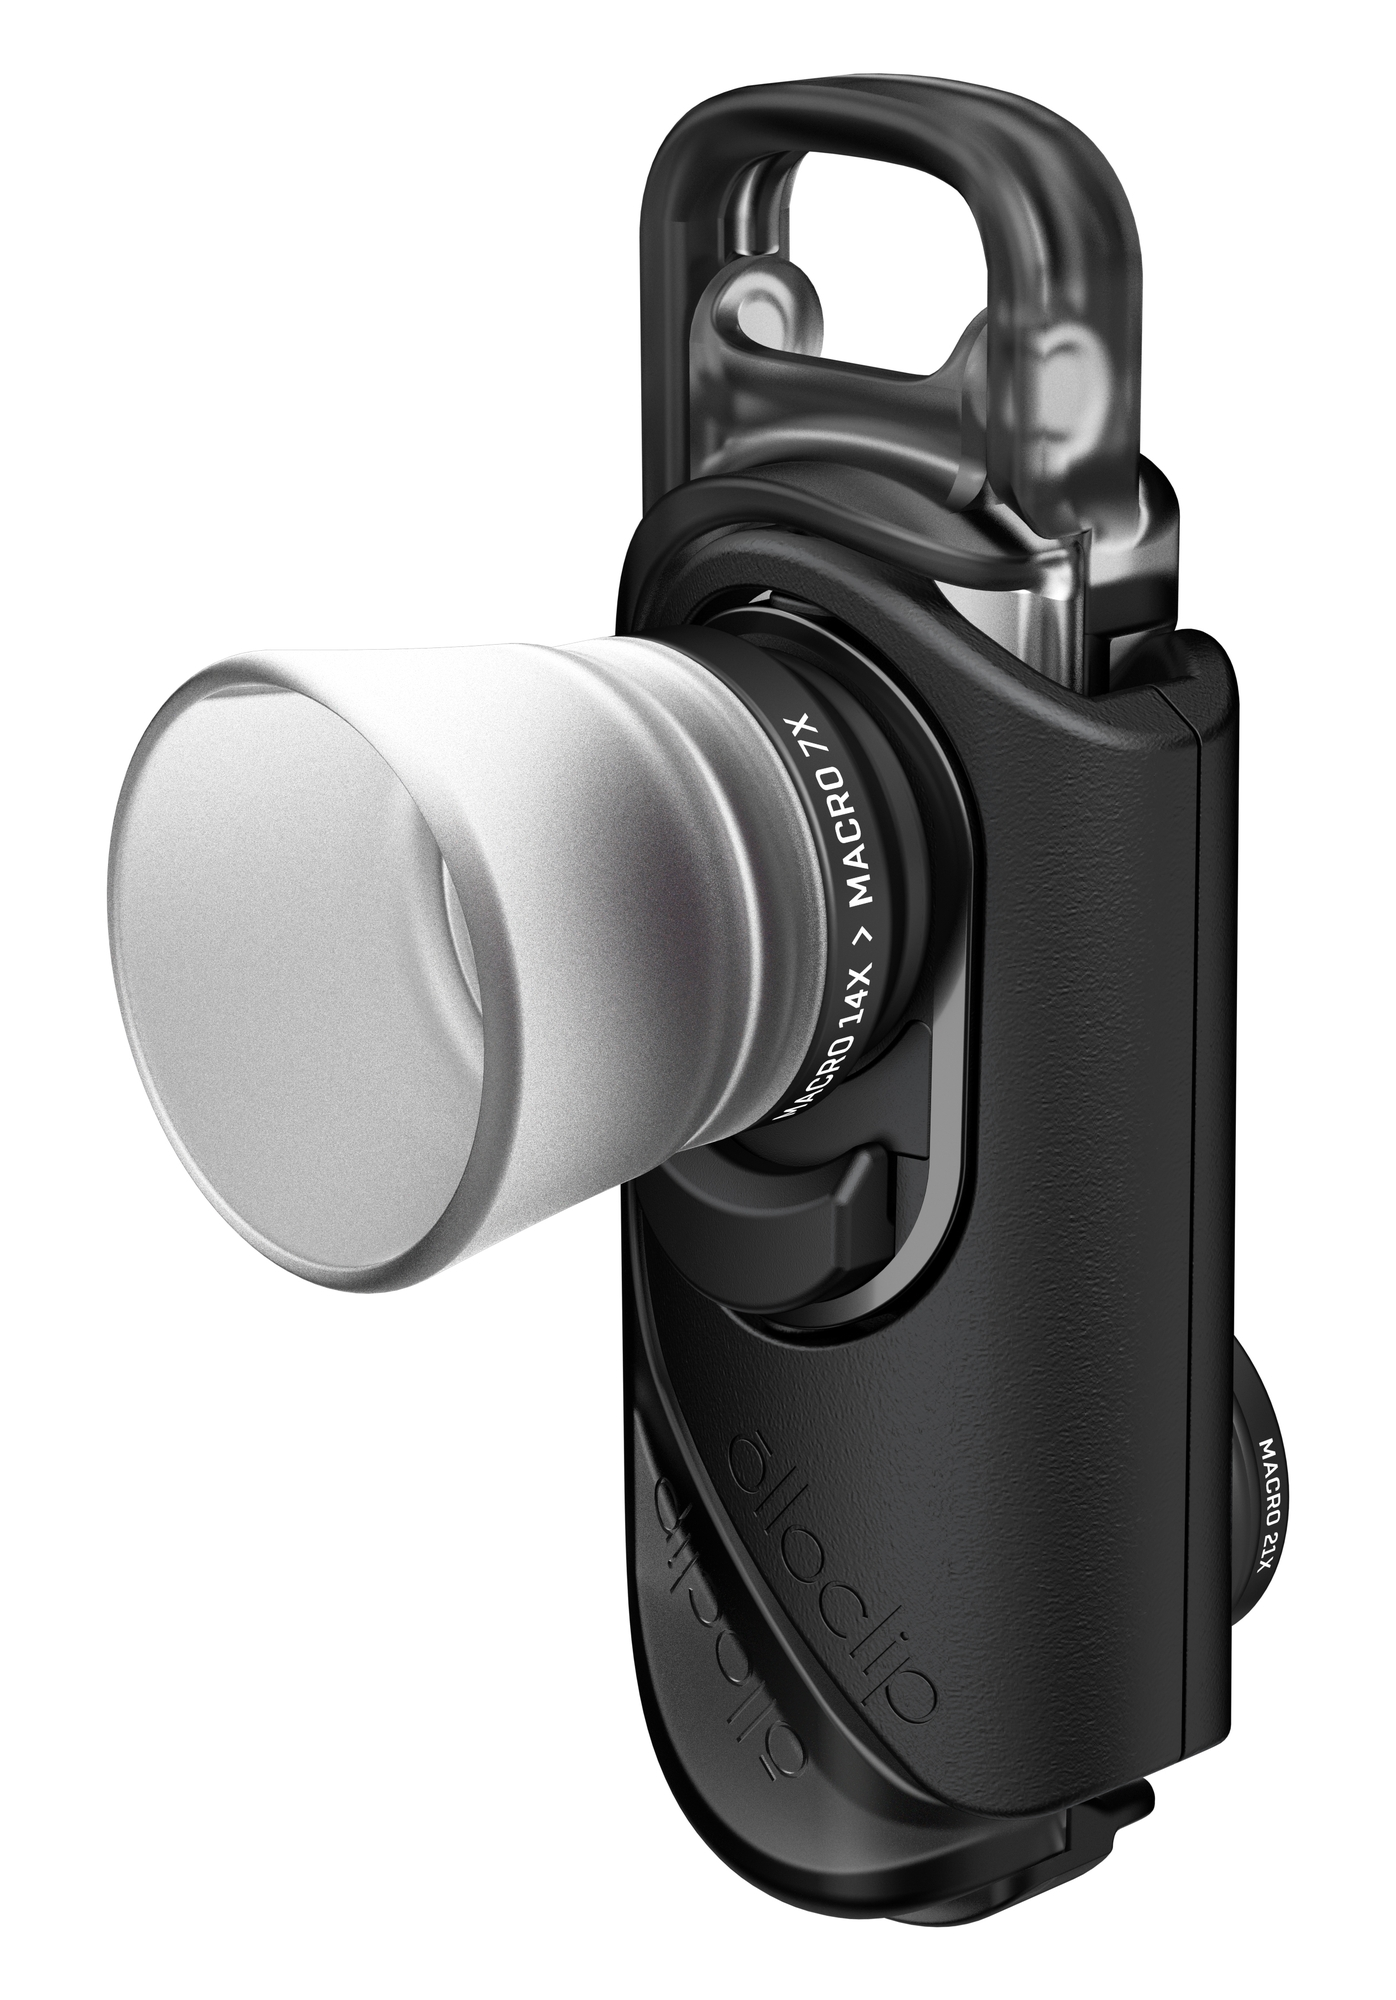 Macro momax x lens 4 in 1 120 degree wide angle 15x macro lens 180 degree fisheye cpl filter for smartphone tablet silver